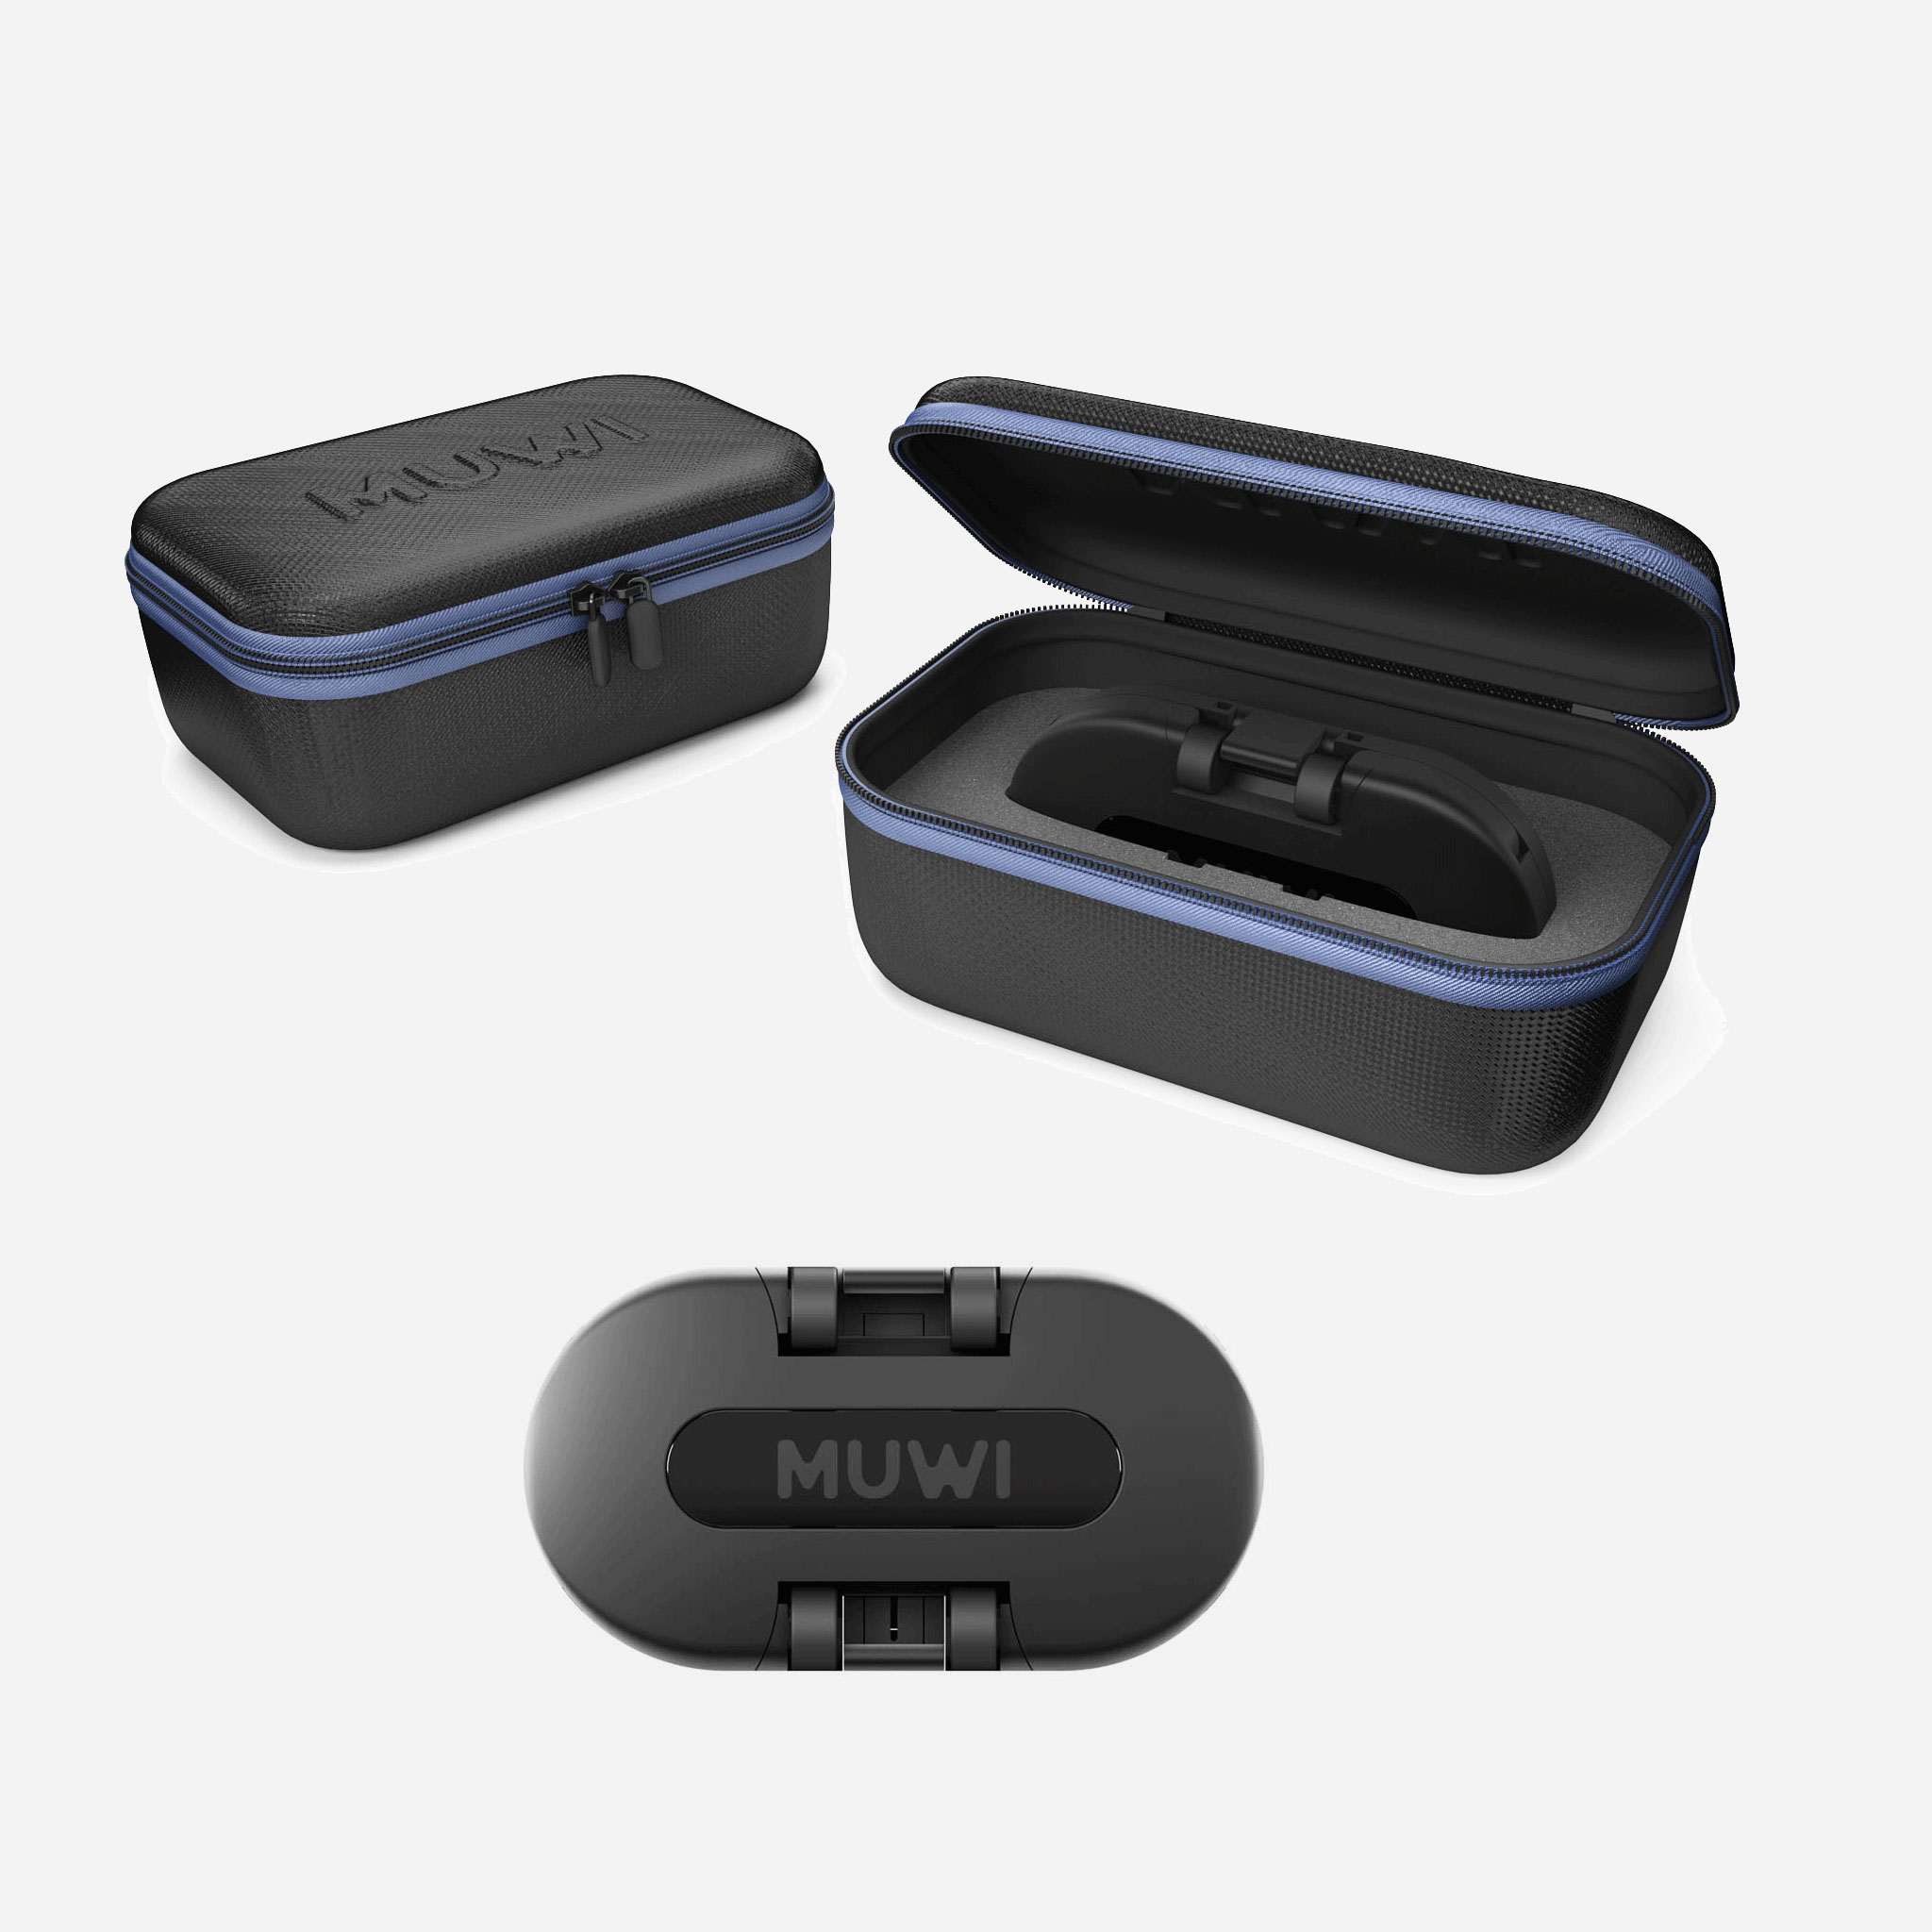 Pocket sized table top dolly, MUWI with its own carry bag